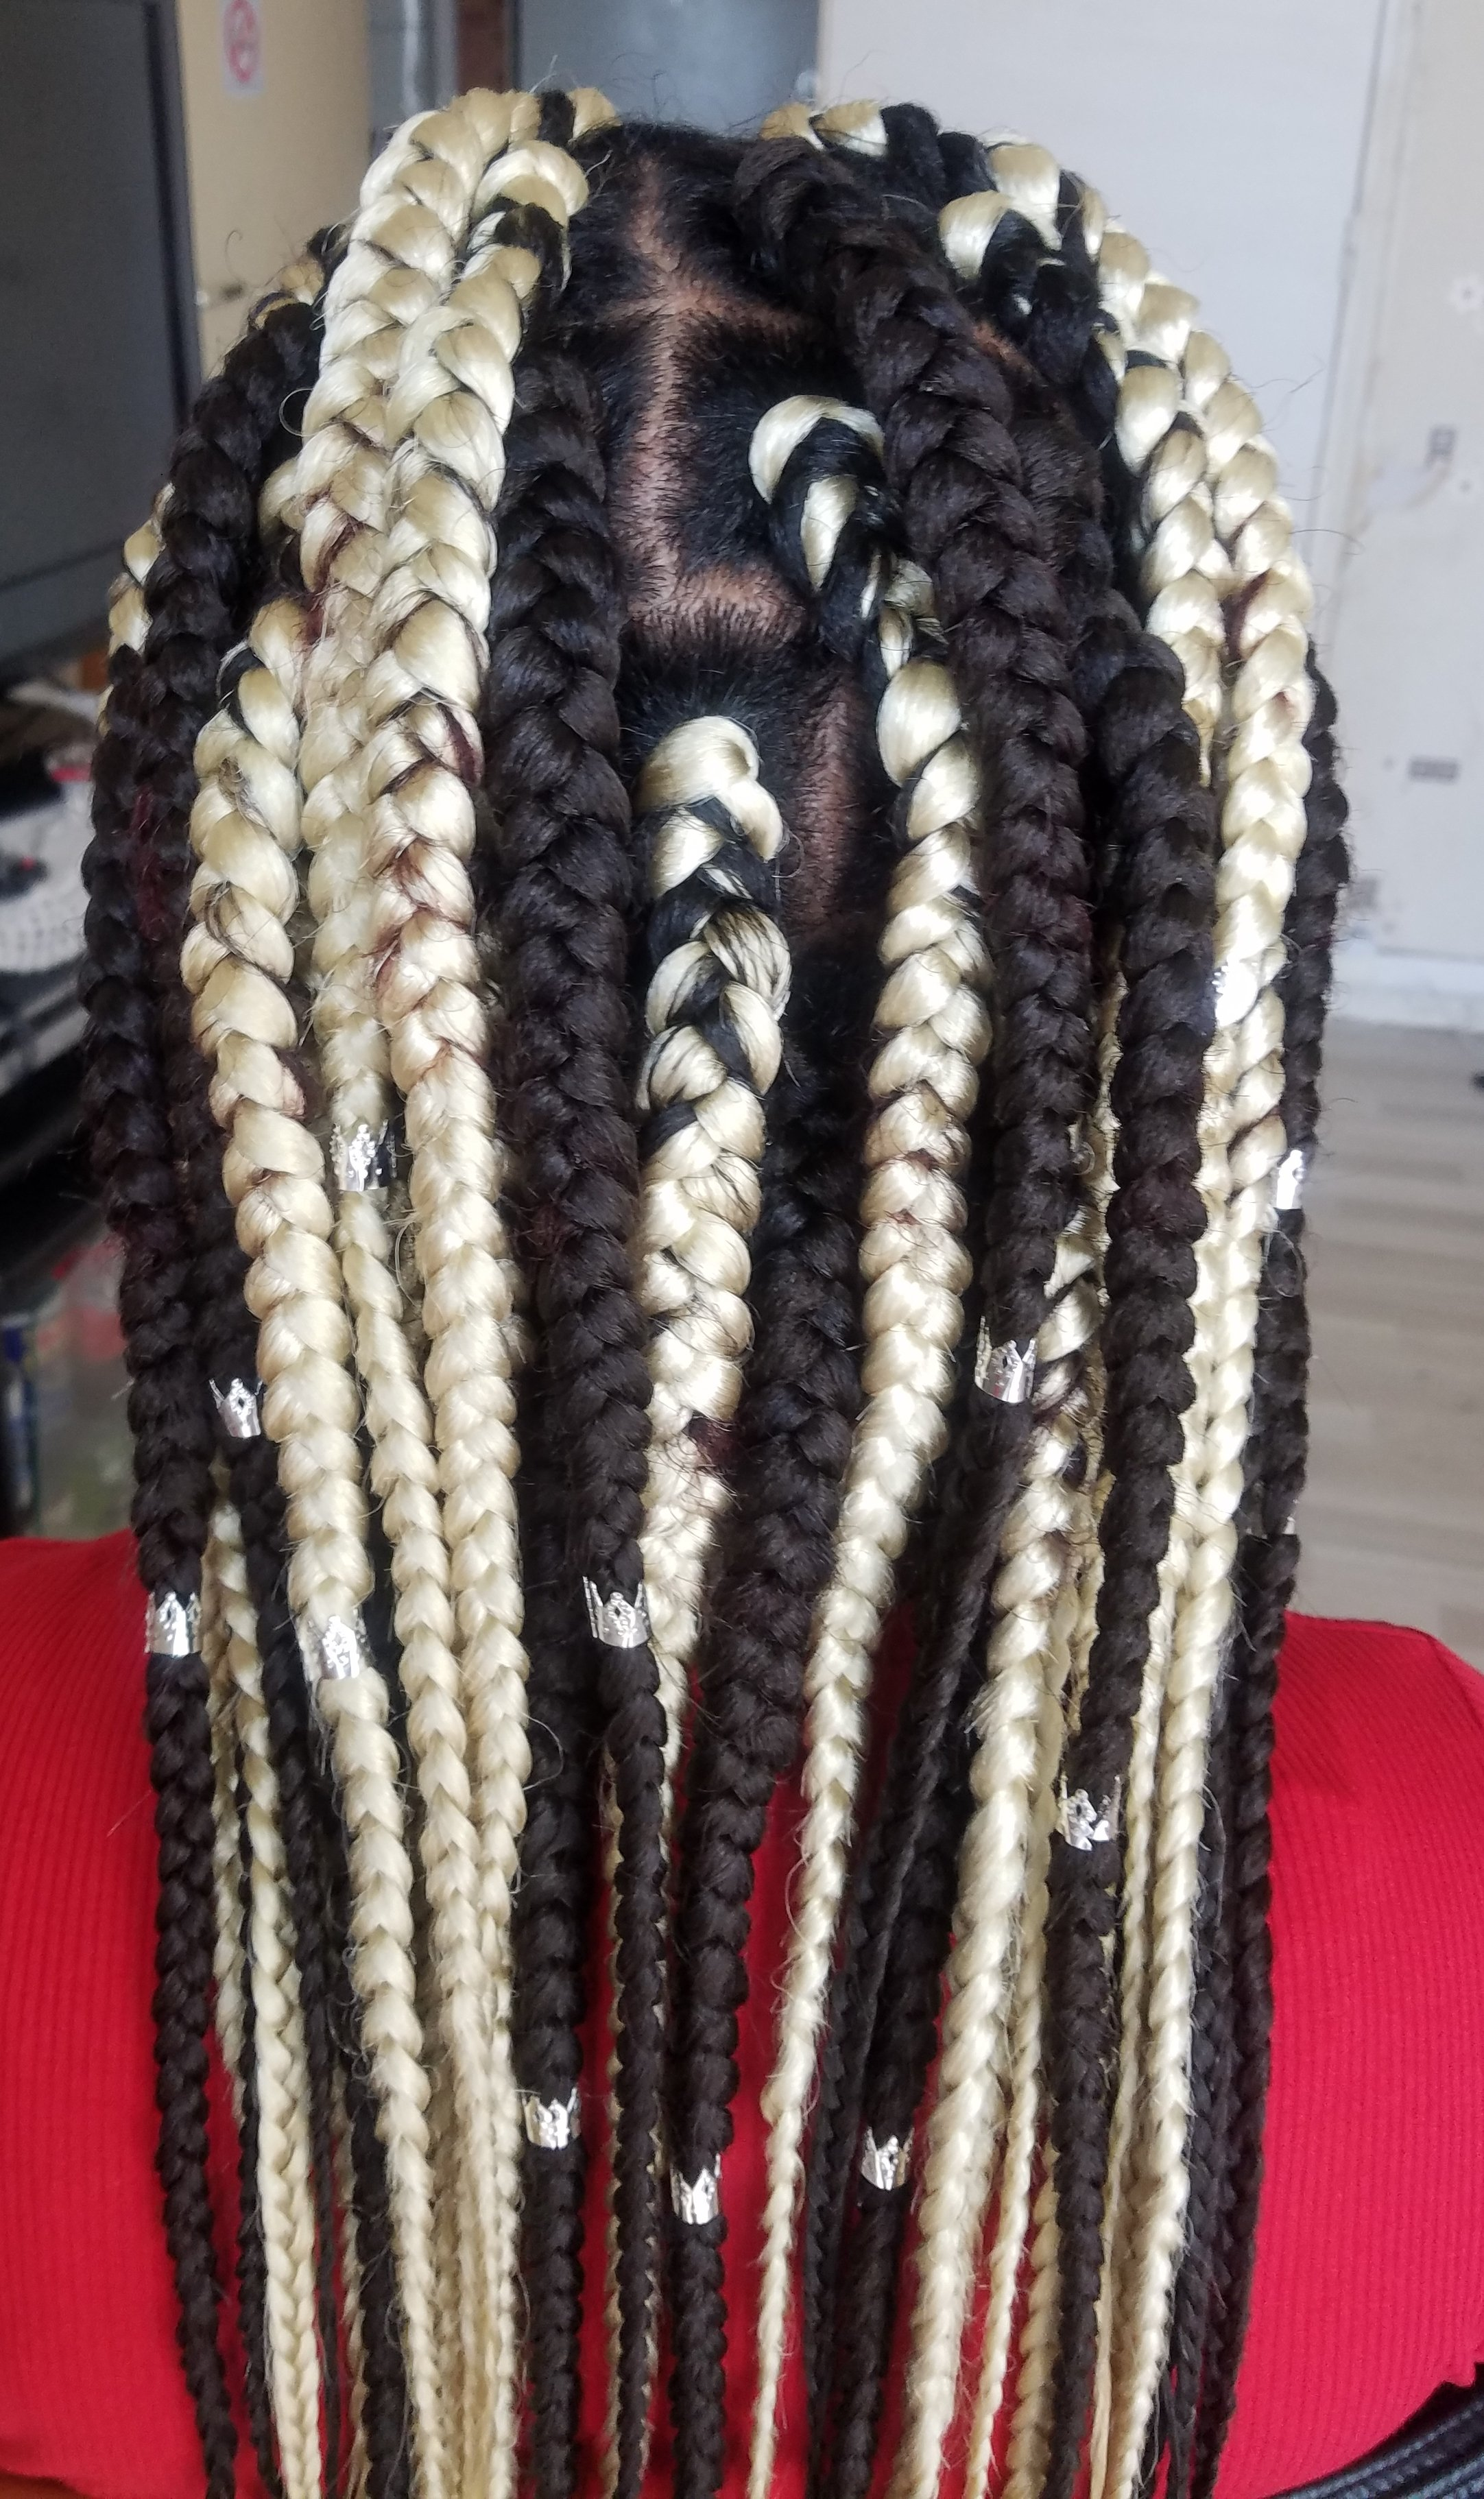 salon de coiffure afro tresse tresses box braids crochet braids vanilles tissages paris 75 77 78 91 92 93 94 95 FAQYYJJD